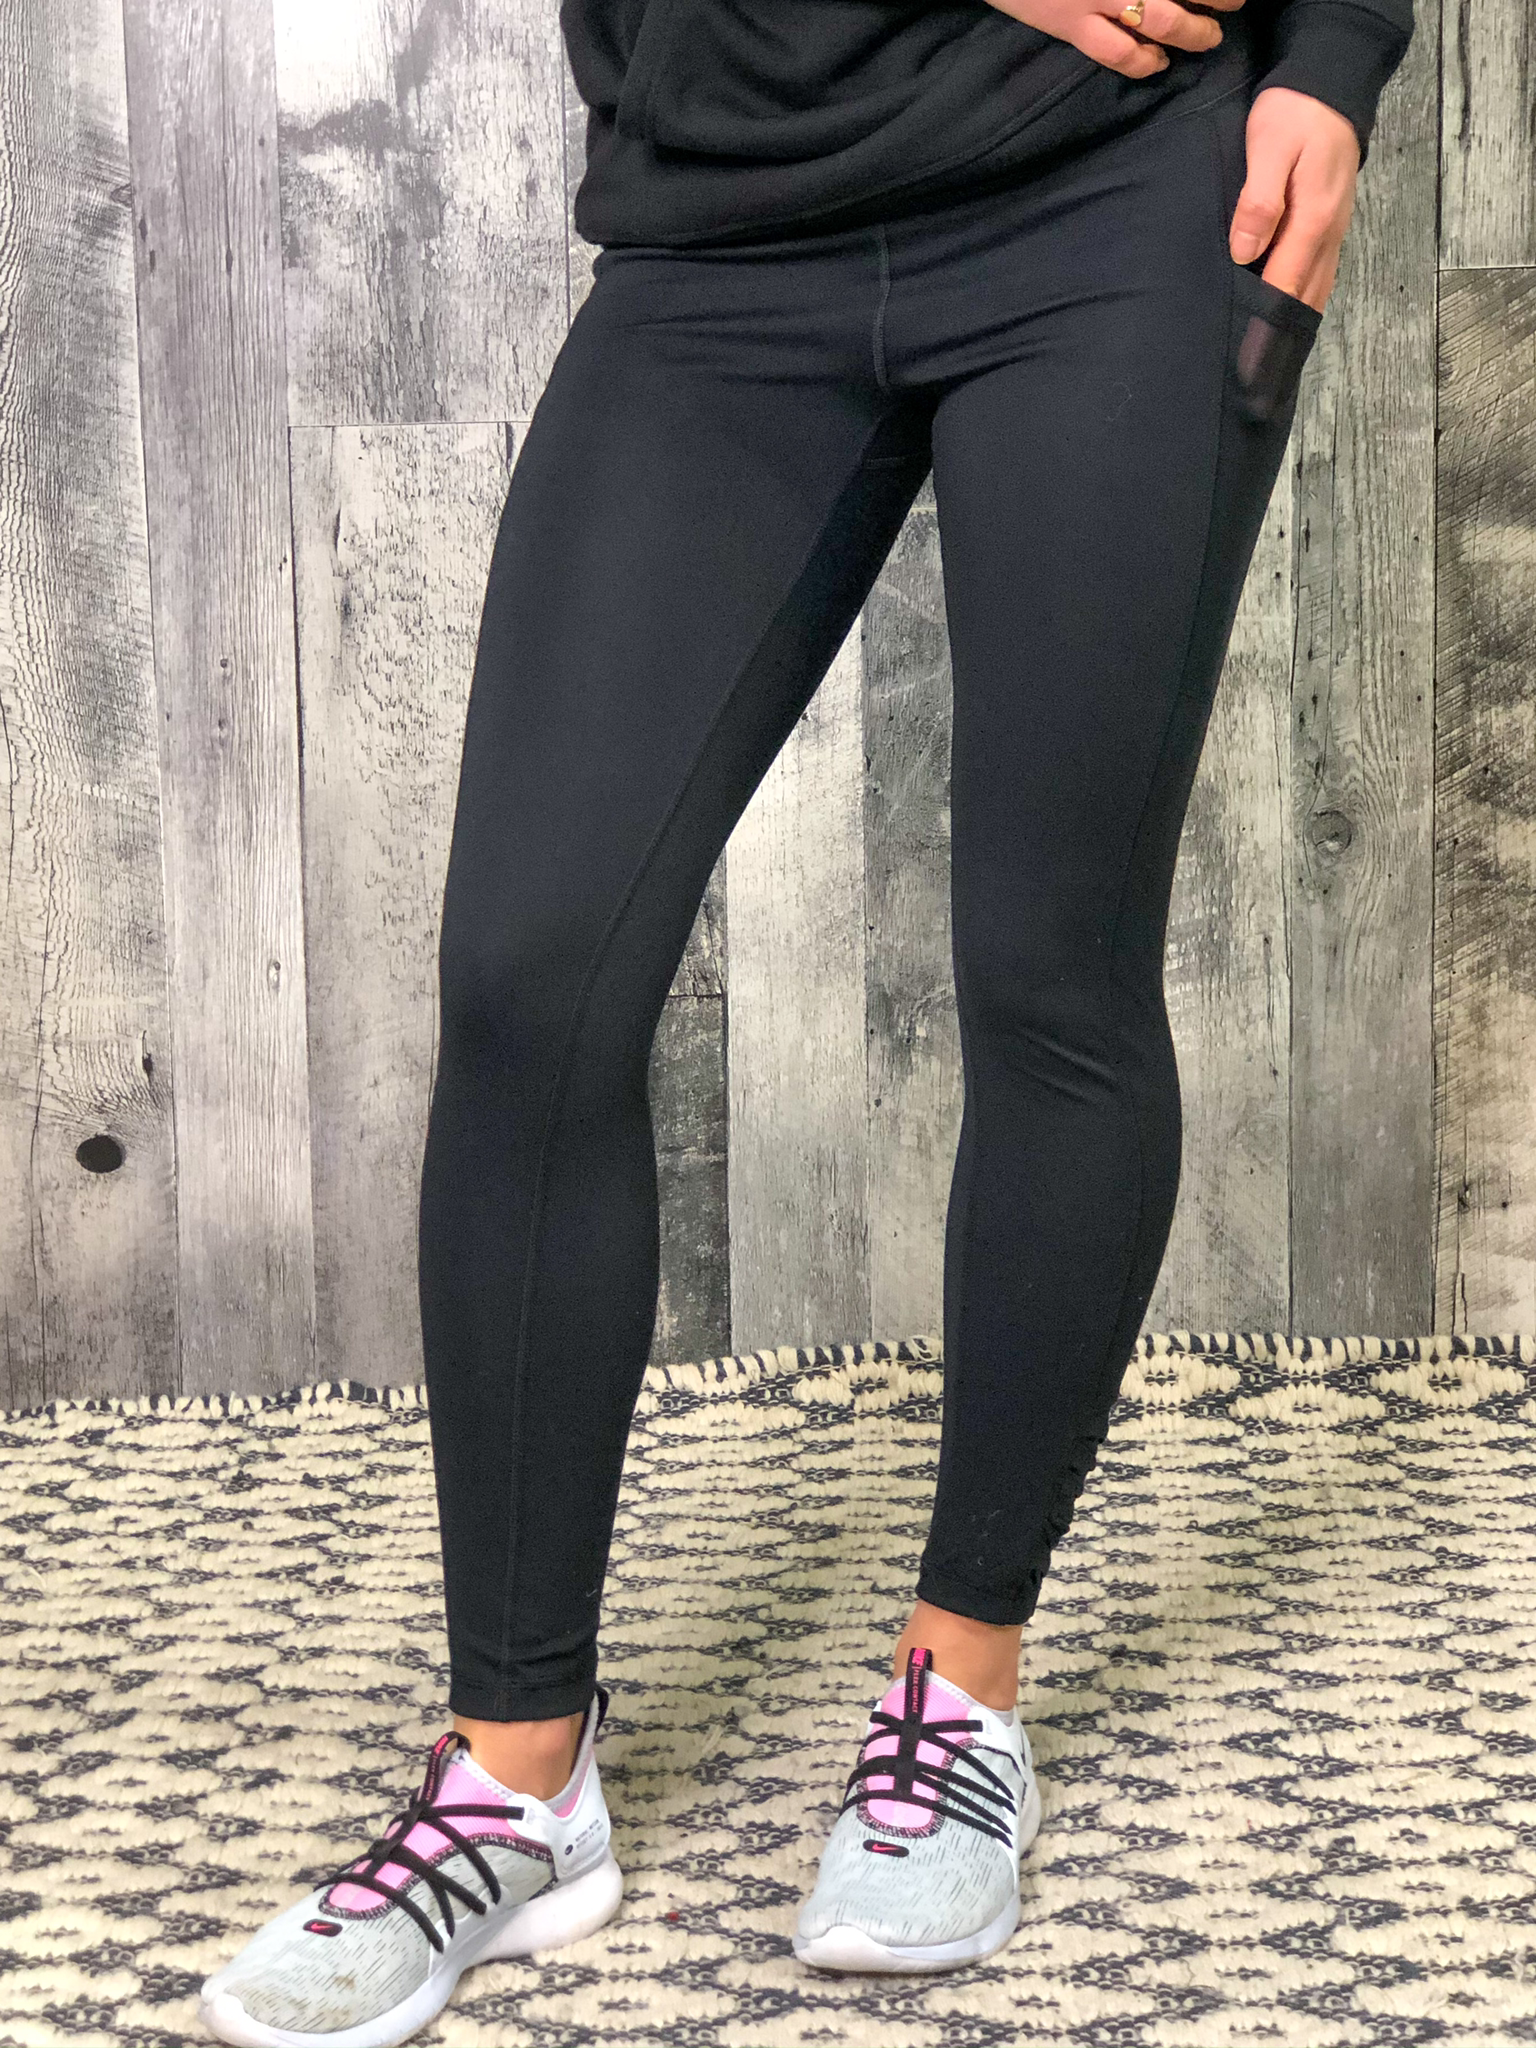 Athletic Legging With Mesh Pocket And Ruffle Ankle Detail  84721